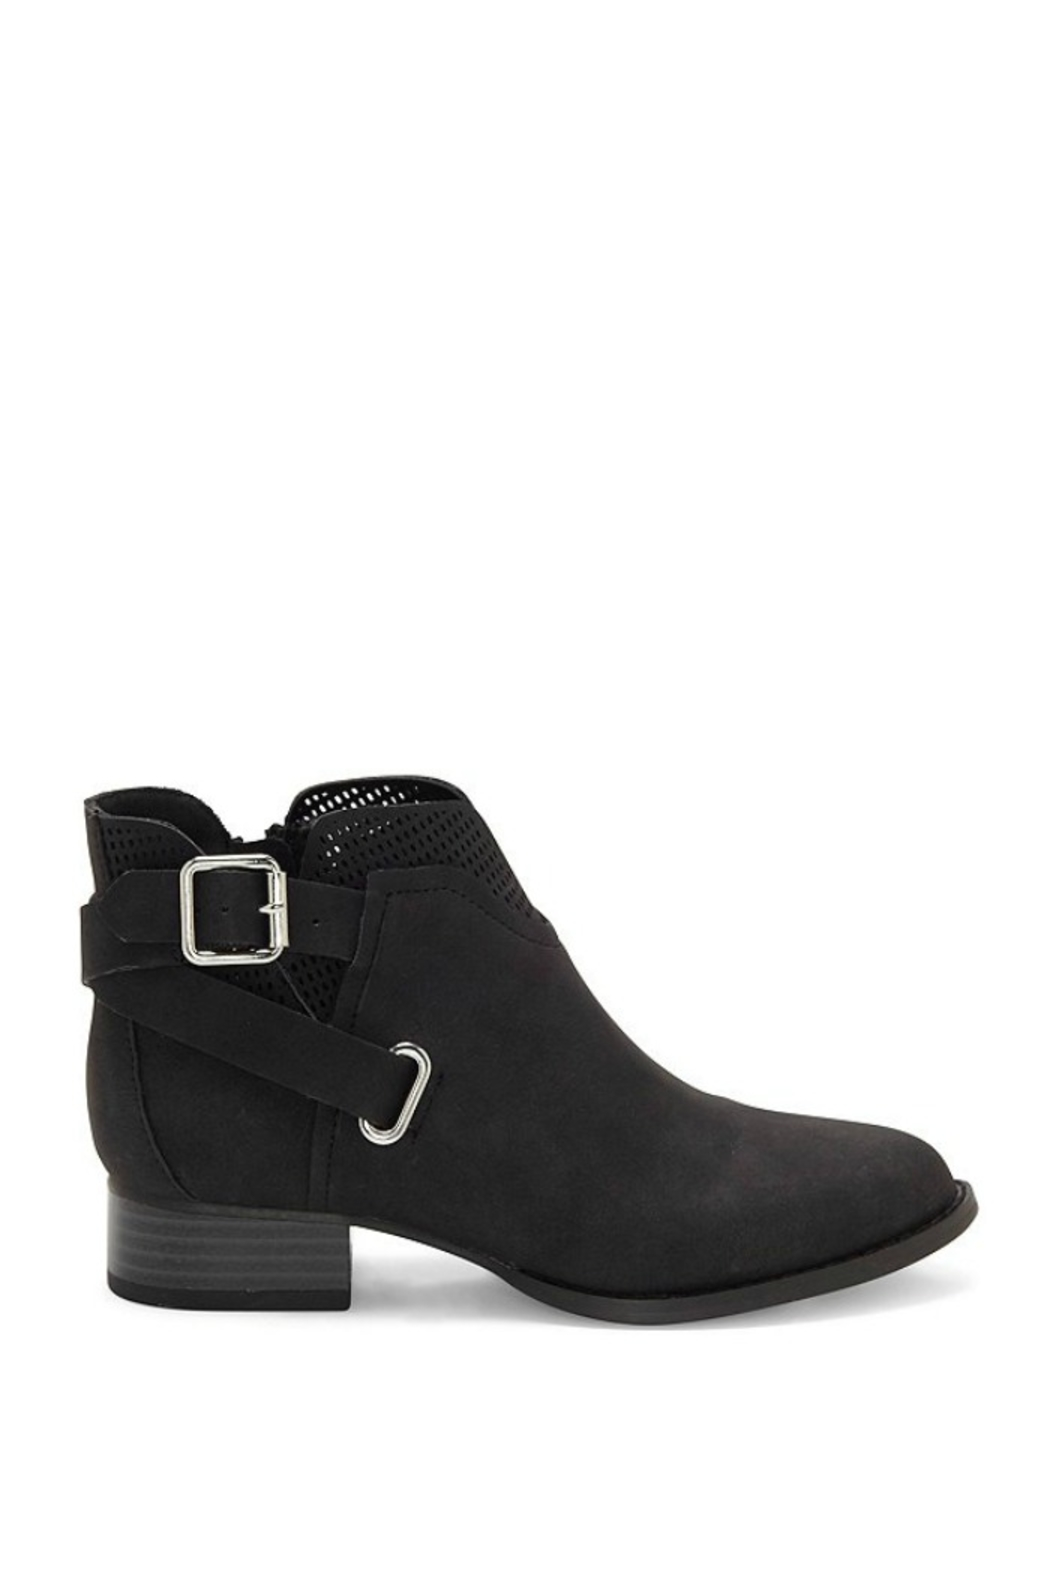 Vince Camuto Calliope Boot - Front Full Image